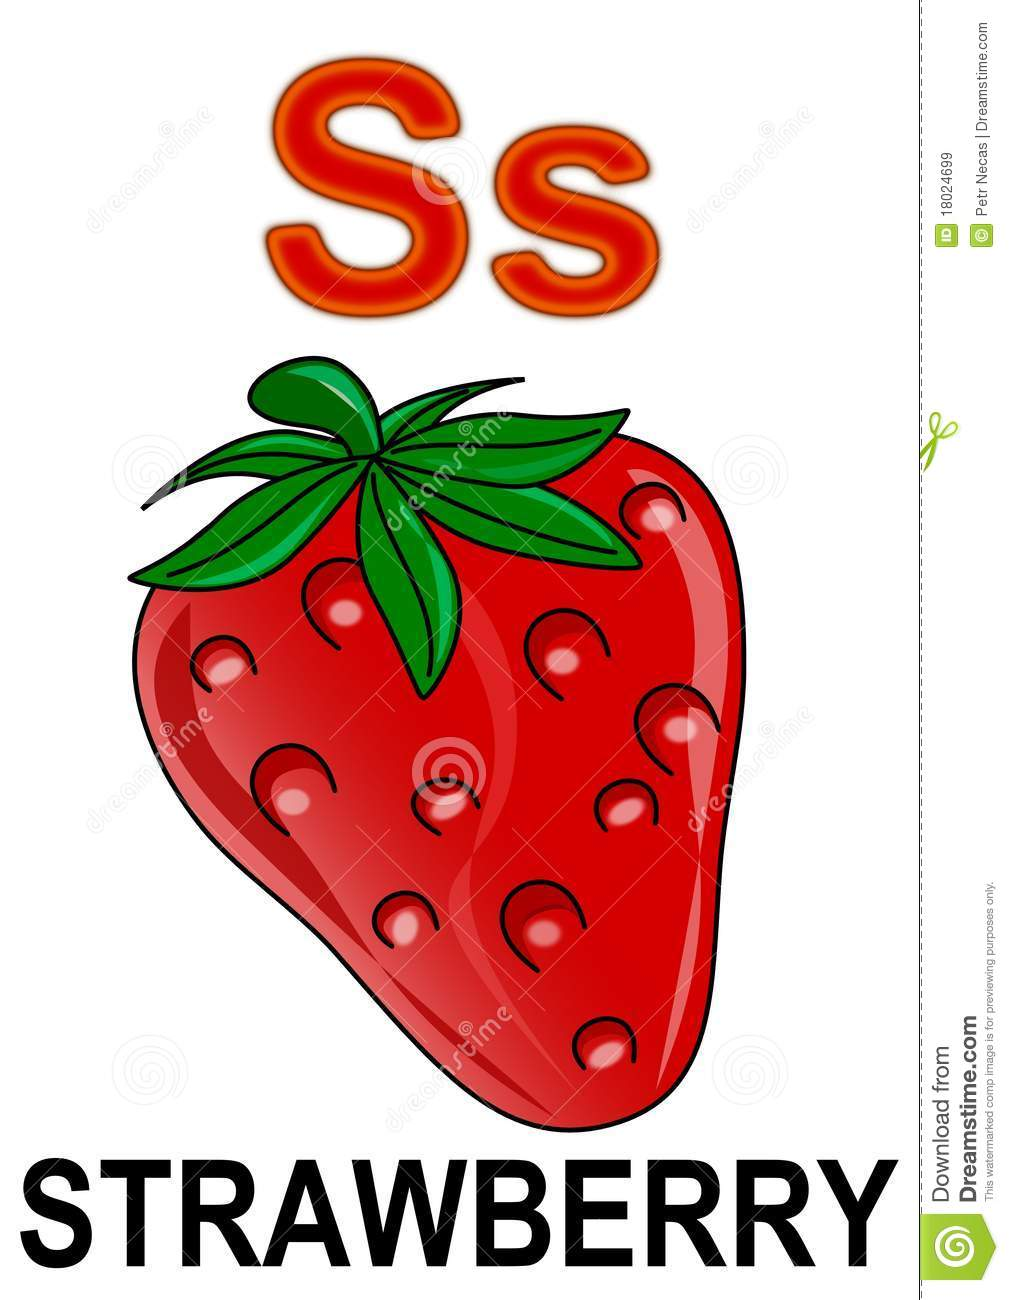 Strawberry Letter Youtube.Strawberry Letters Youtube Kids